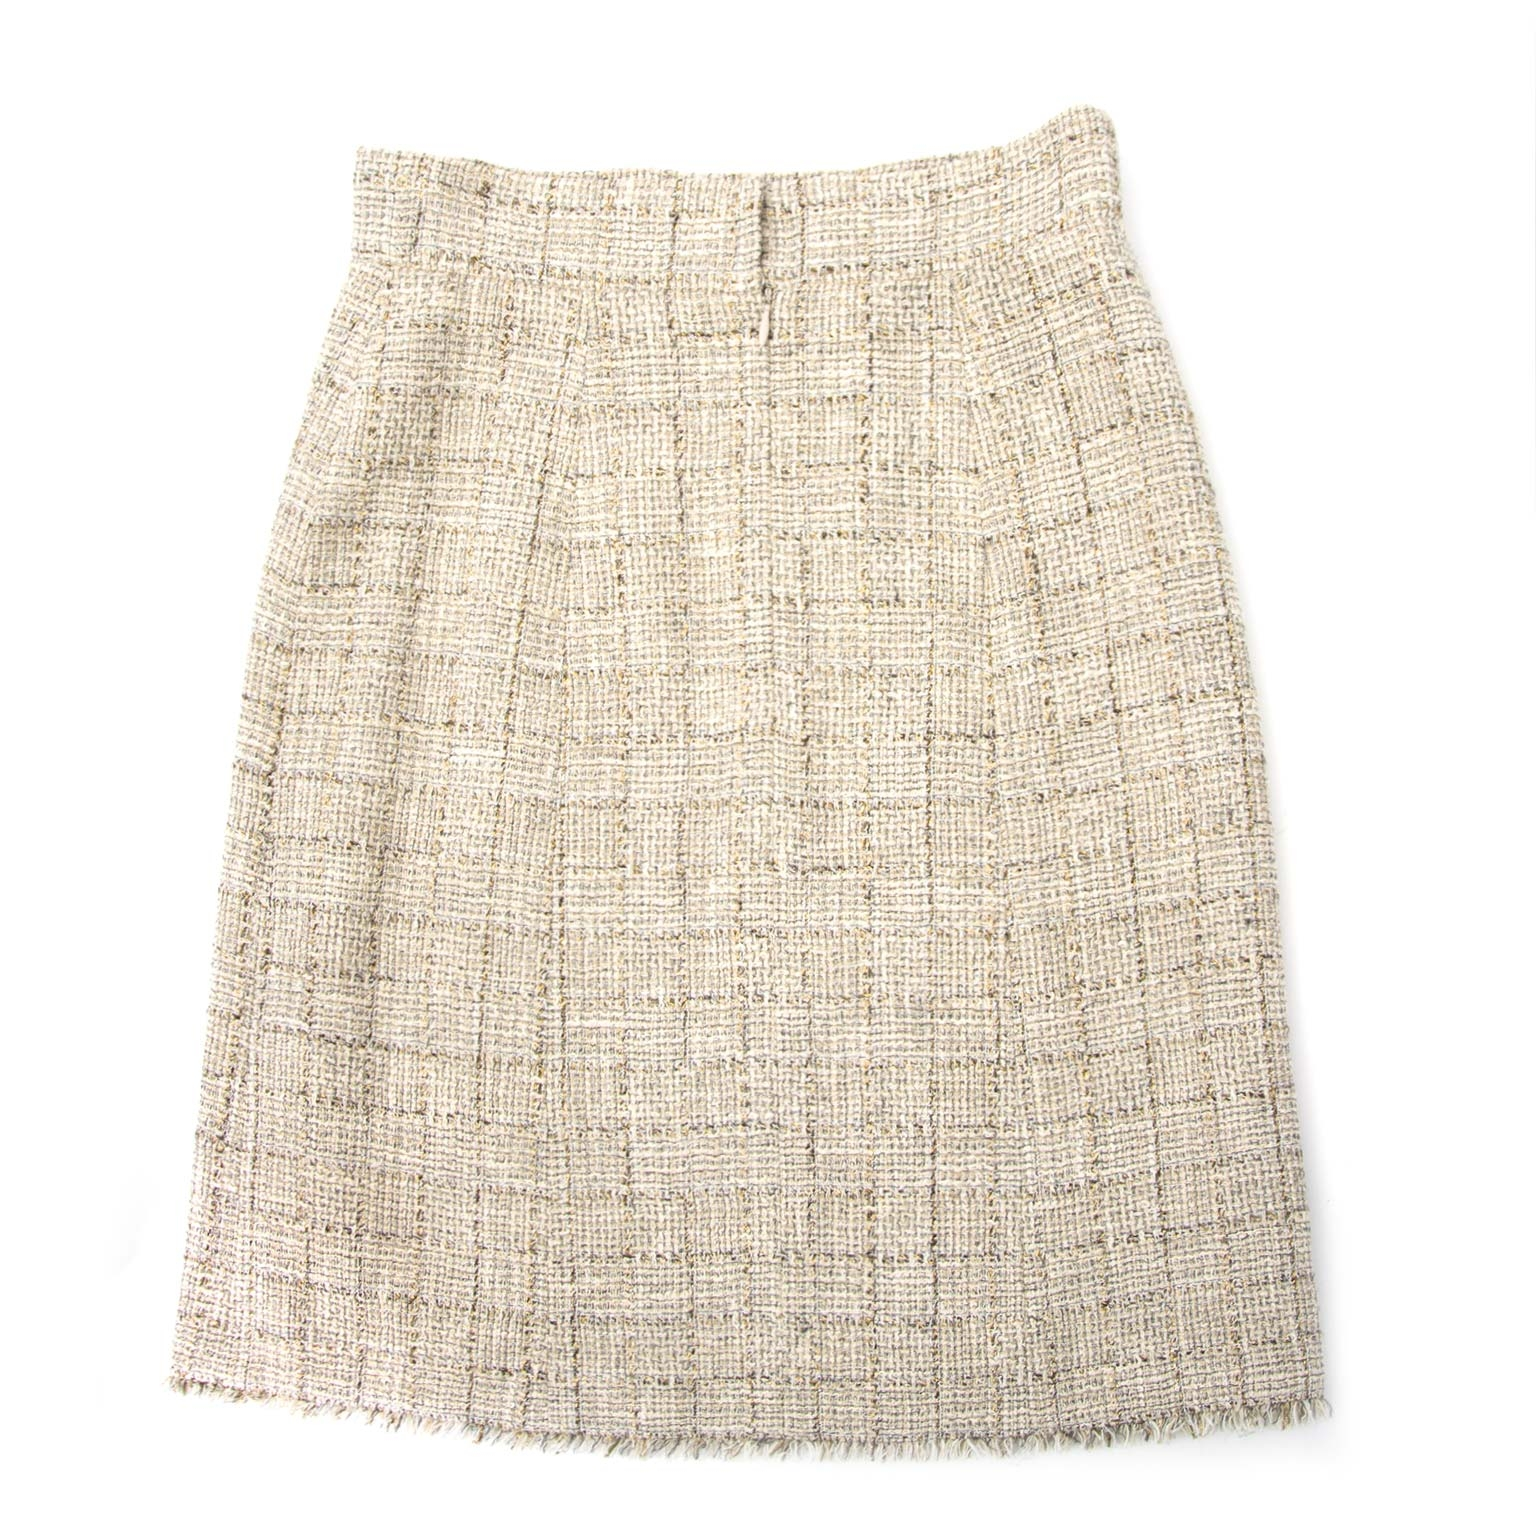 Buy your authentic designer Chanel skirt for less at Labellov. Safe and secure shopping.